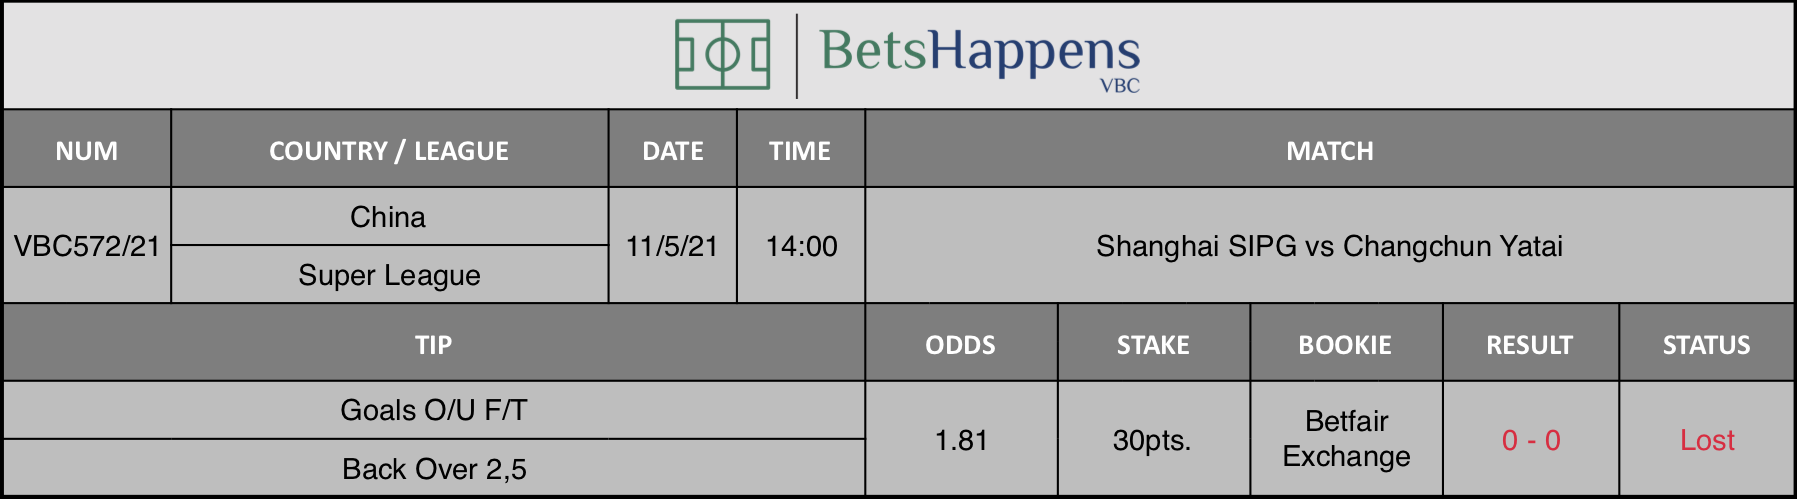 Results of our tip for the Shanghai SIPG vs Changchun Yatai match where Goals O/U F/T Back Over 2,5 is recommended.